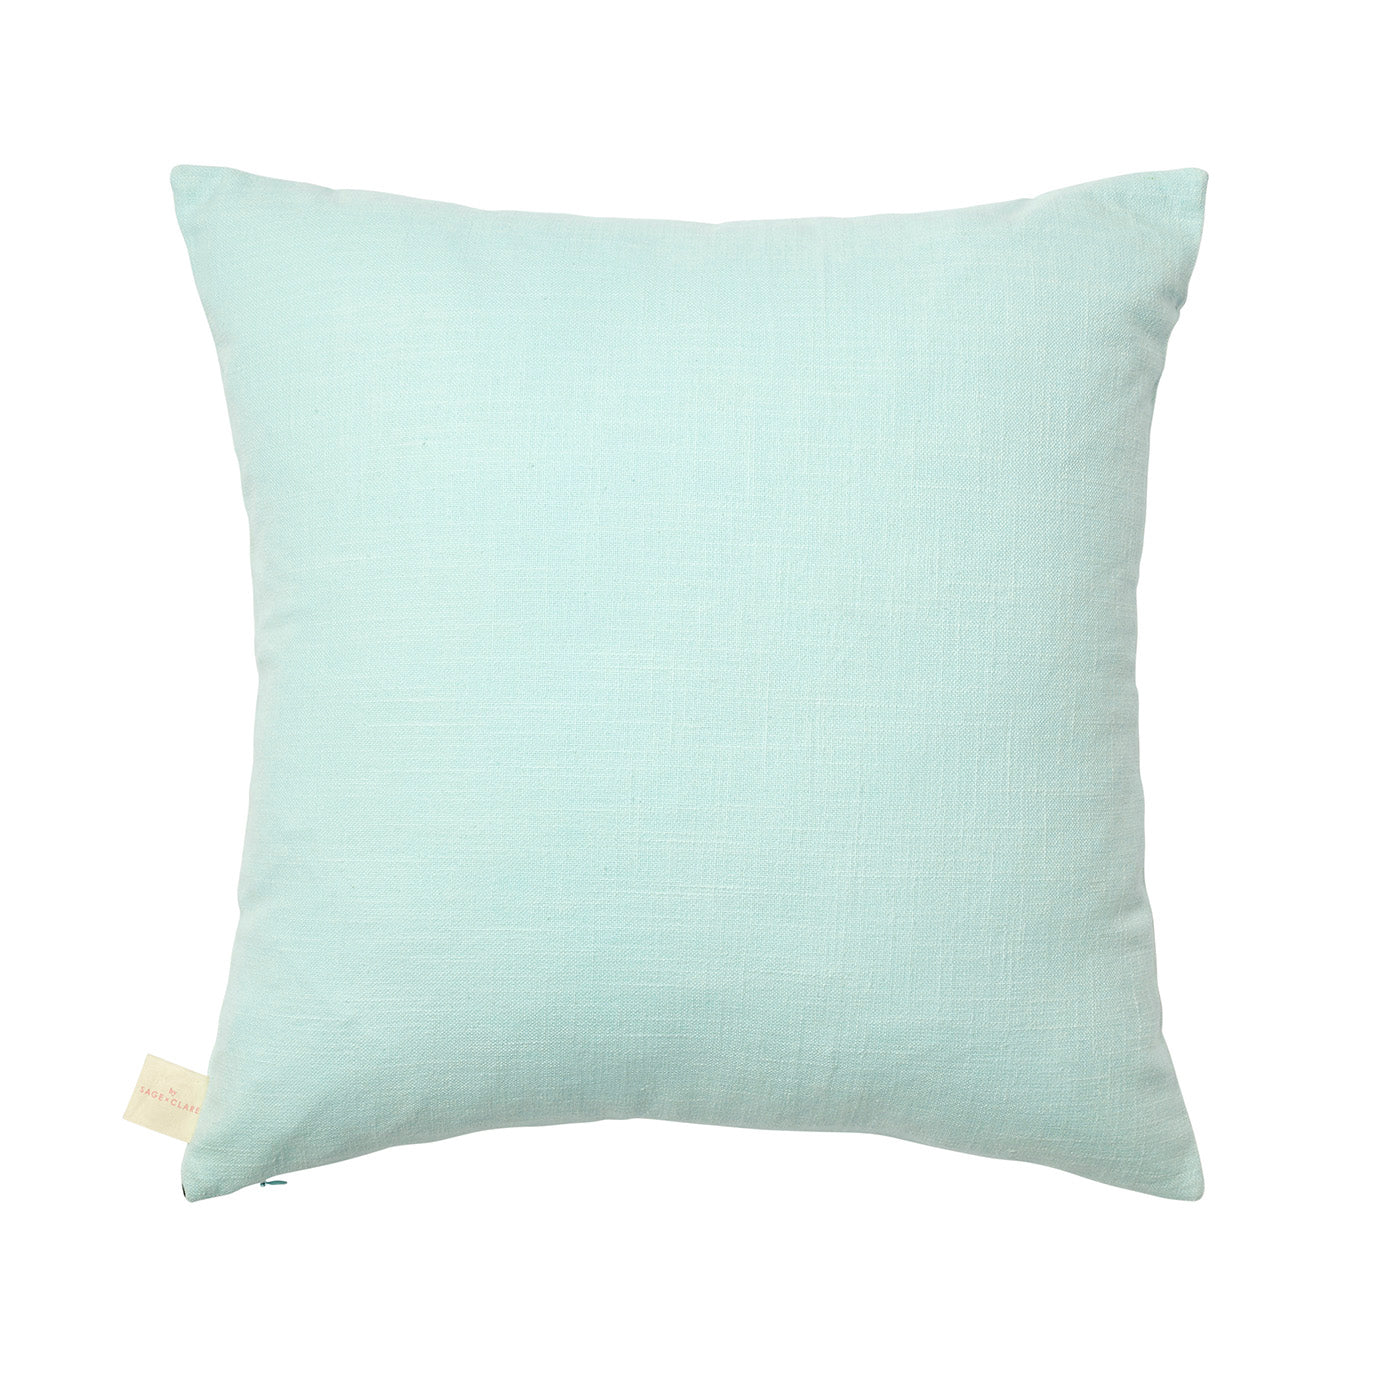 Derida Embroidered Cushion